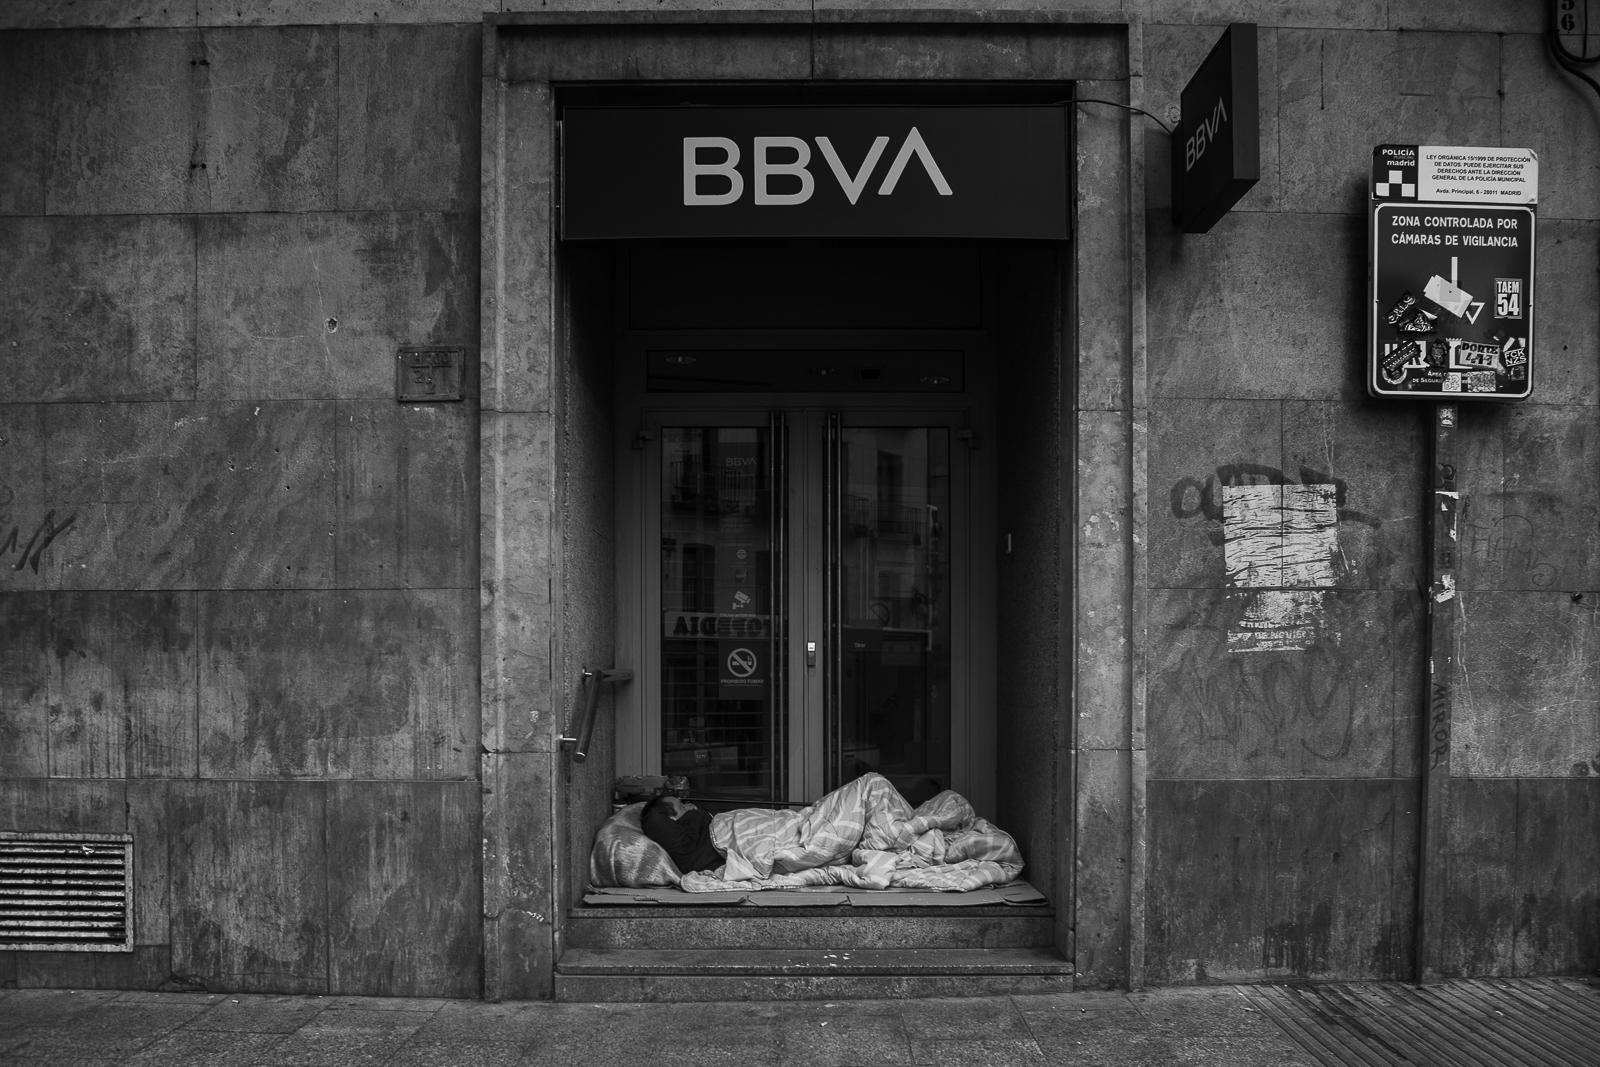 Indigent sleeping at the door of the BBVA bank in the city of Madrid during the national lockdown amid coronavirus pandemic.